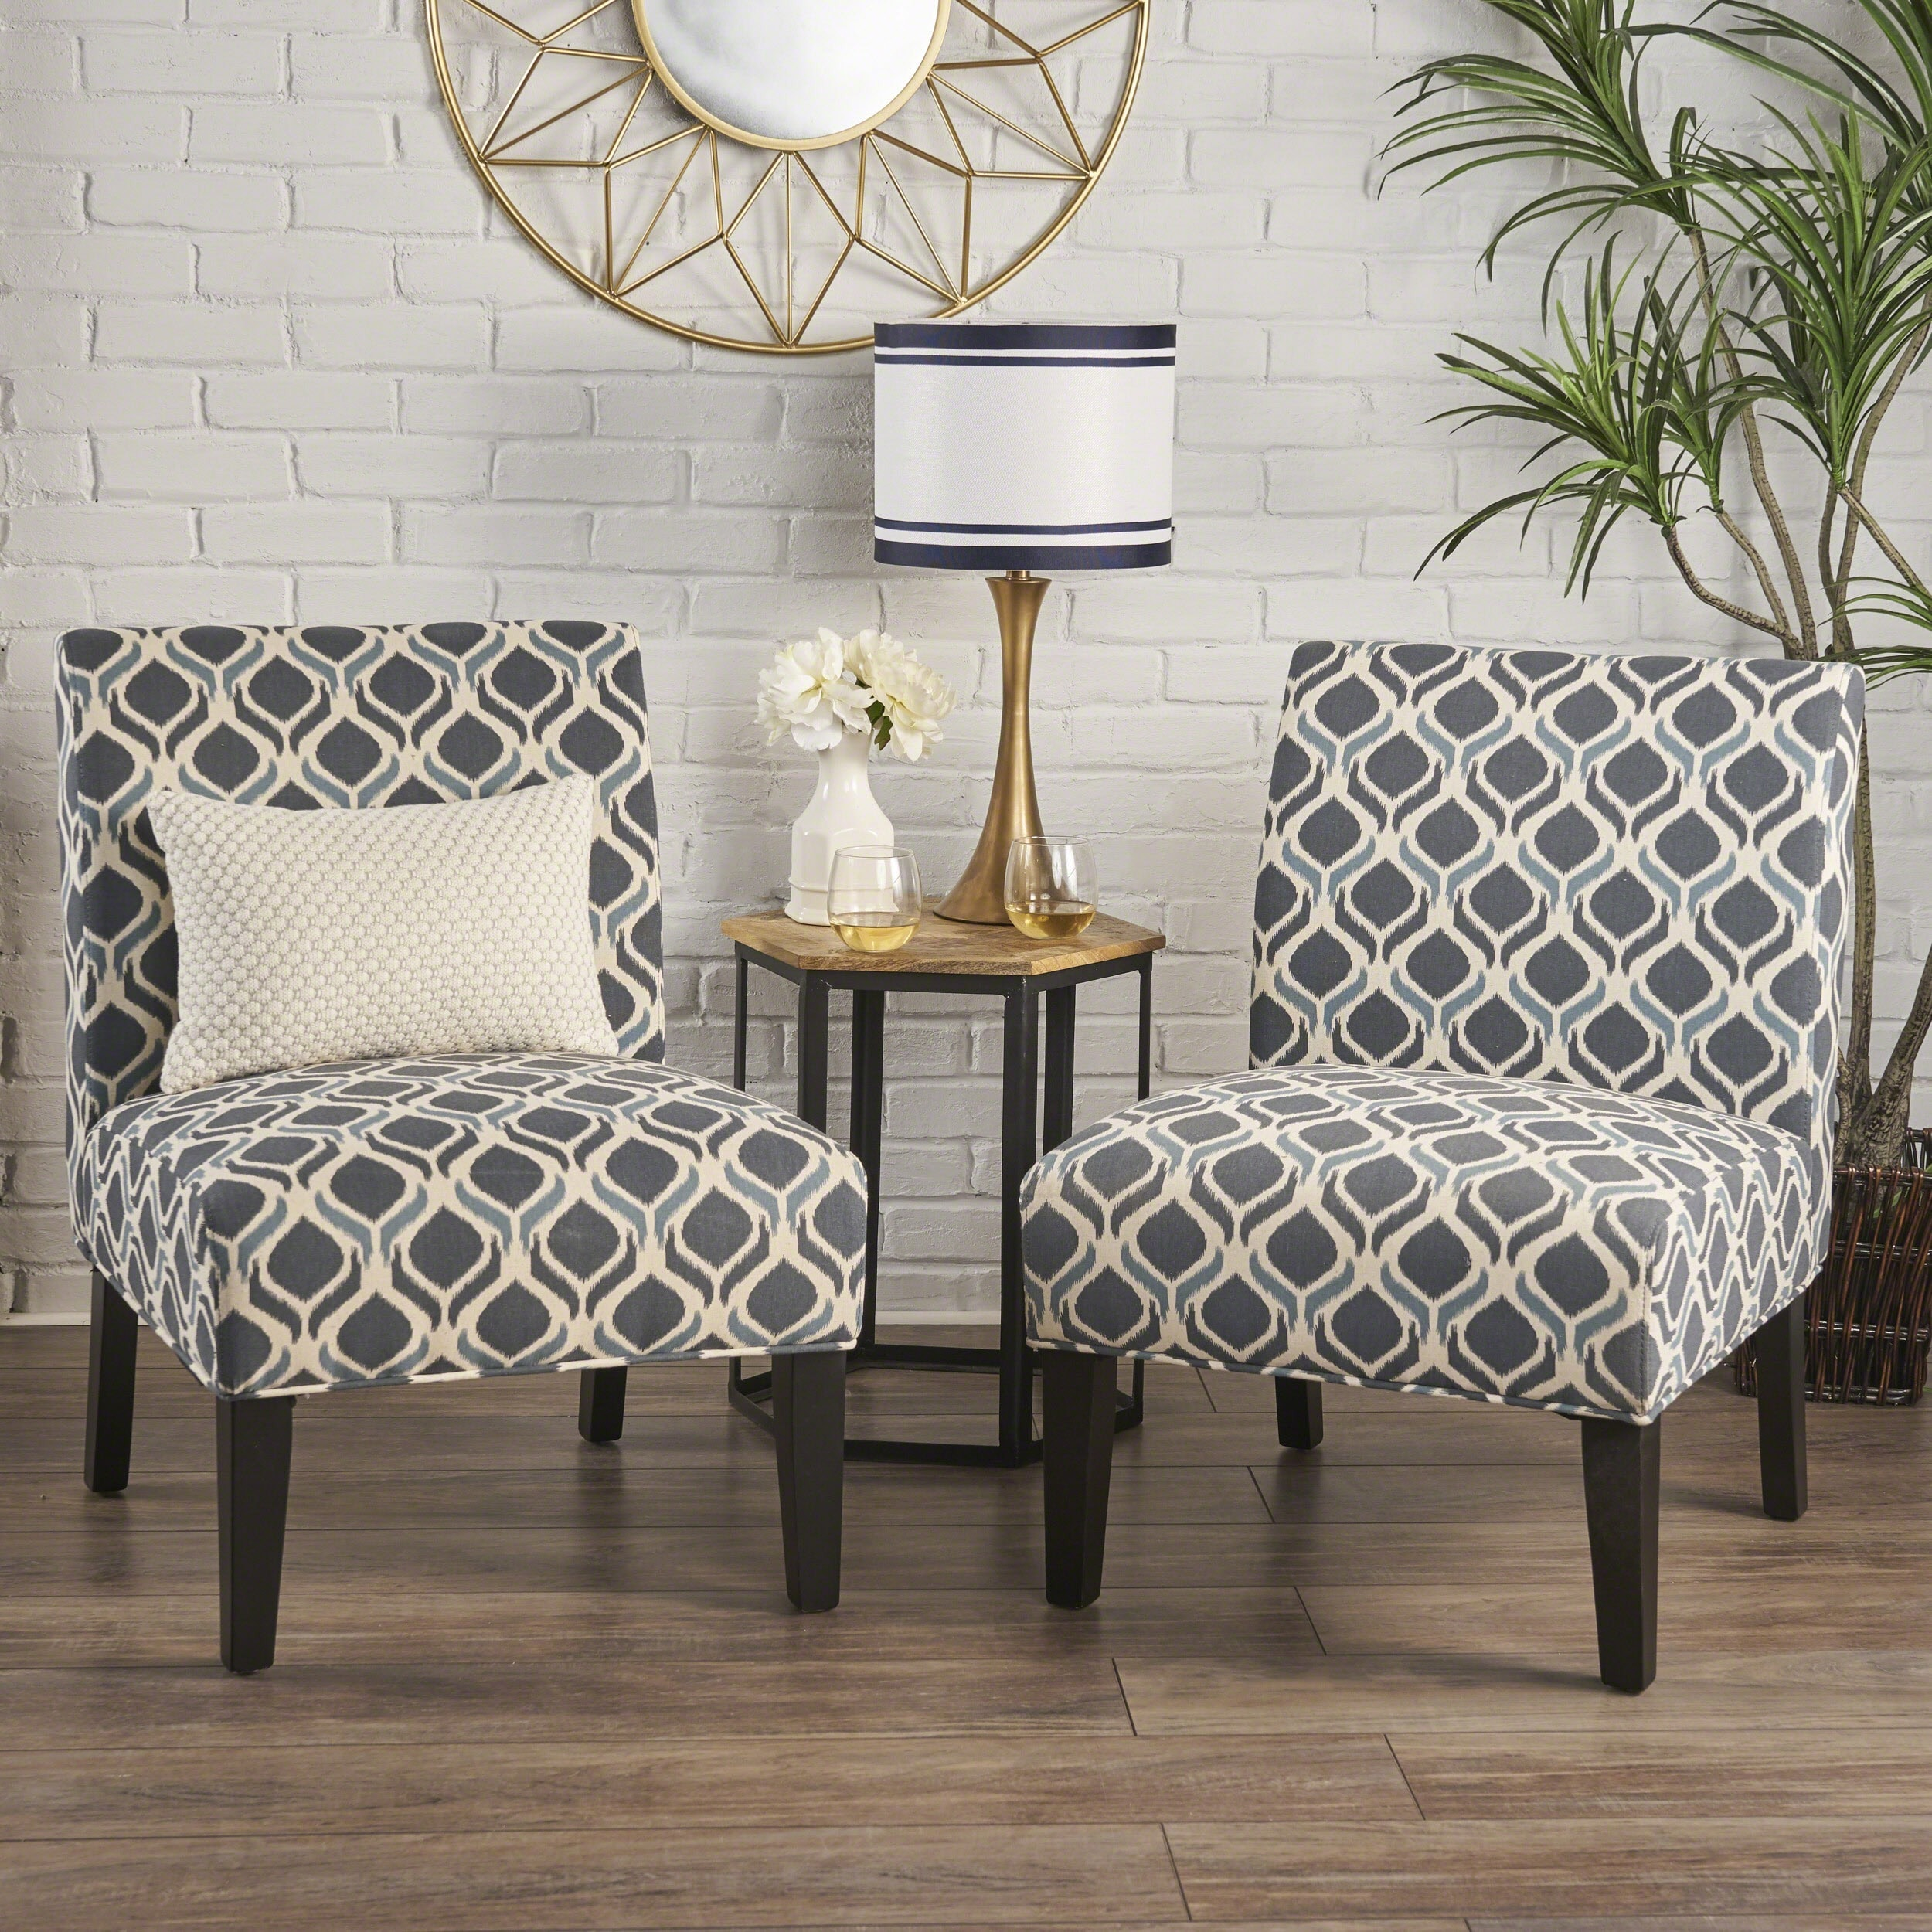 Accent Chairs.Saloon Fabric Print Accent Chair Set Of 2 By Christopher Knight Home